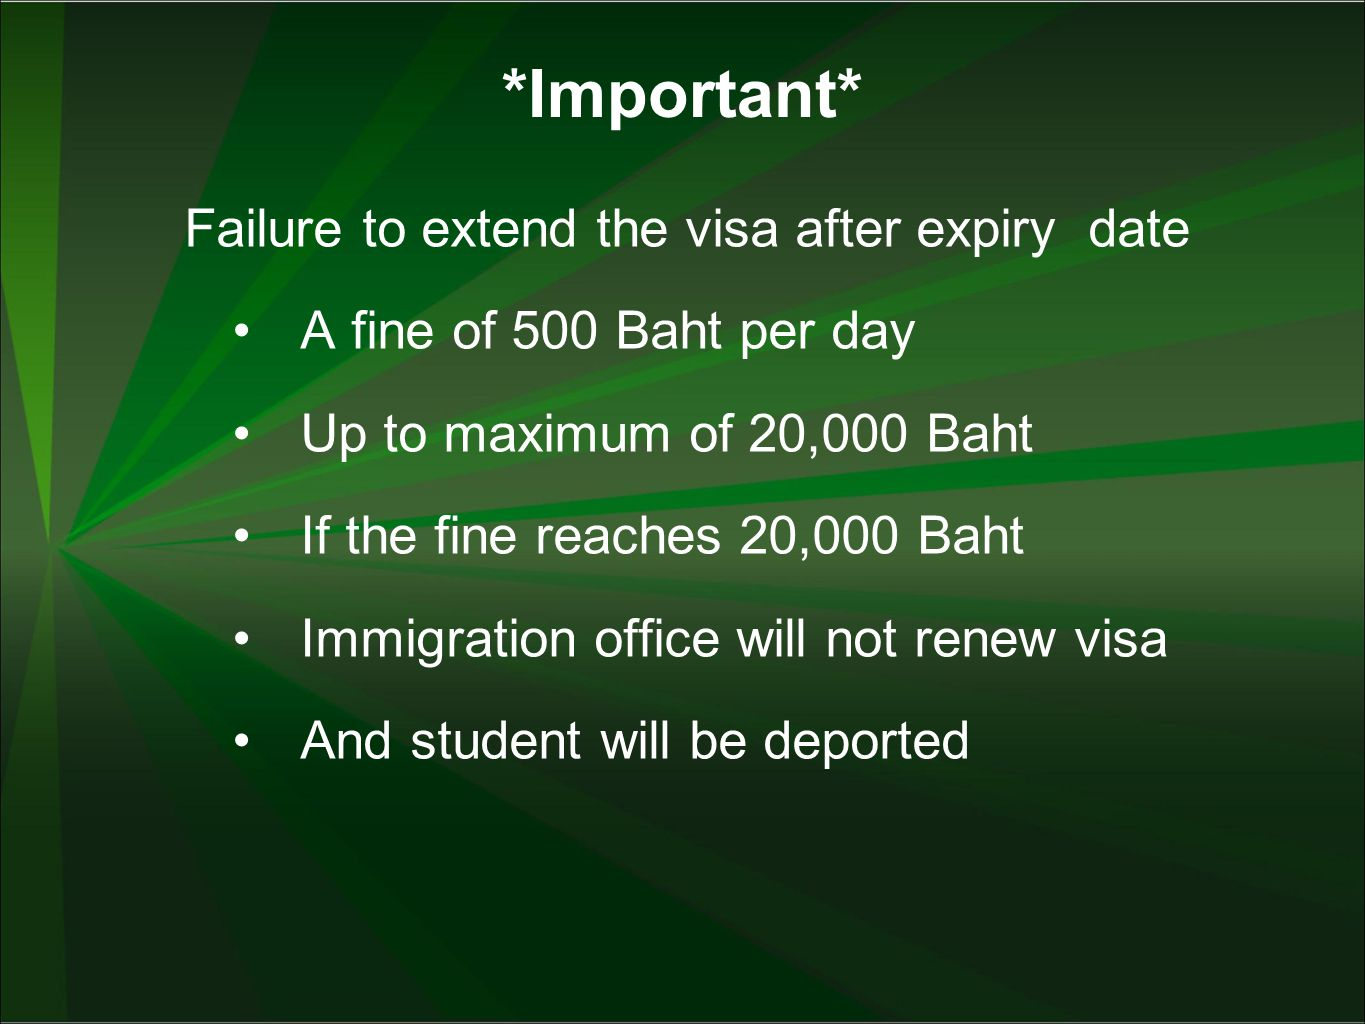 *Important* Failure to extend the visa after expiry date